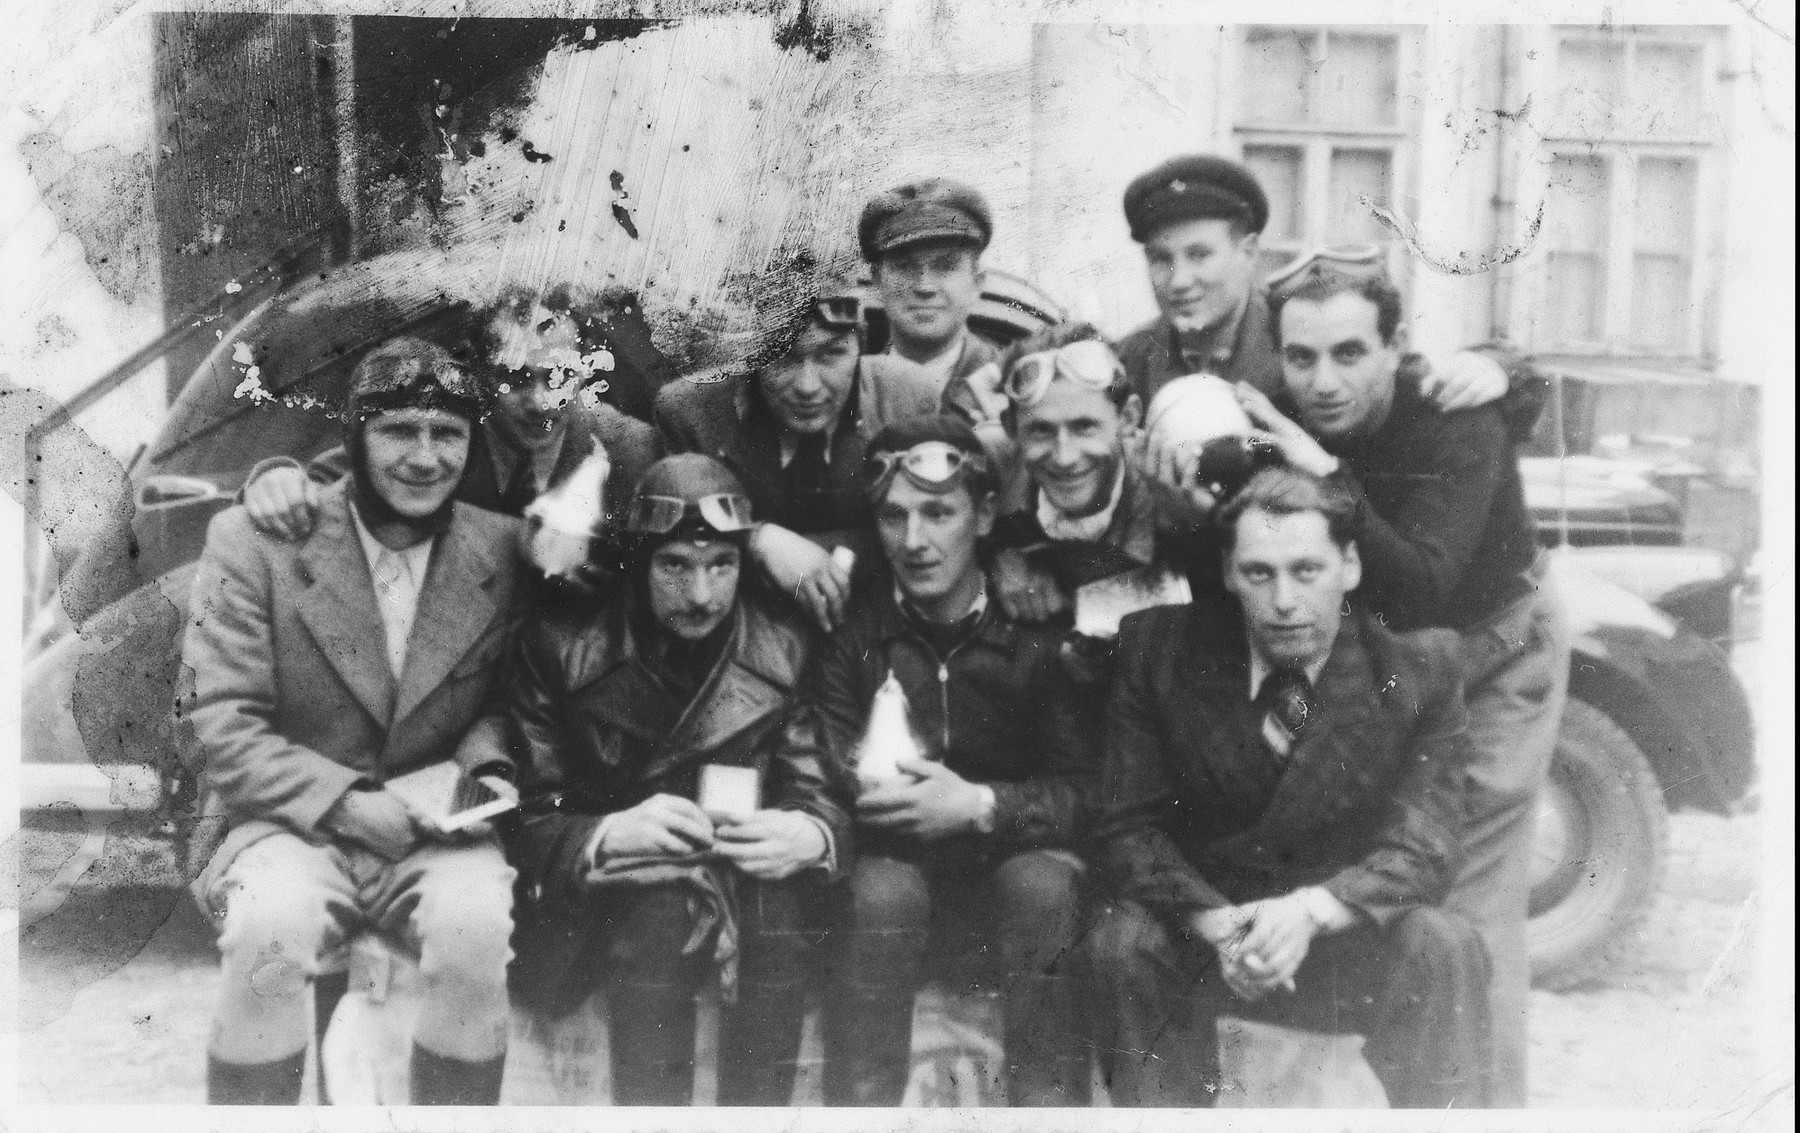 Group portrait of members of the Kaunas Motor Club.  Among those pictured is Isroel Ipp (front row, right) and Fima Frietberg (middle row, right).